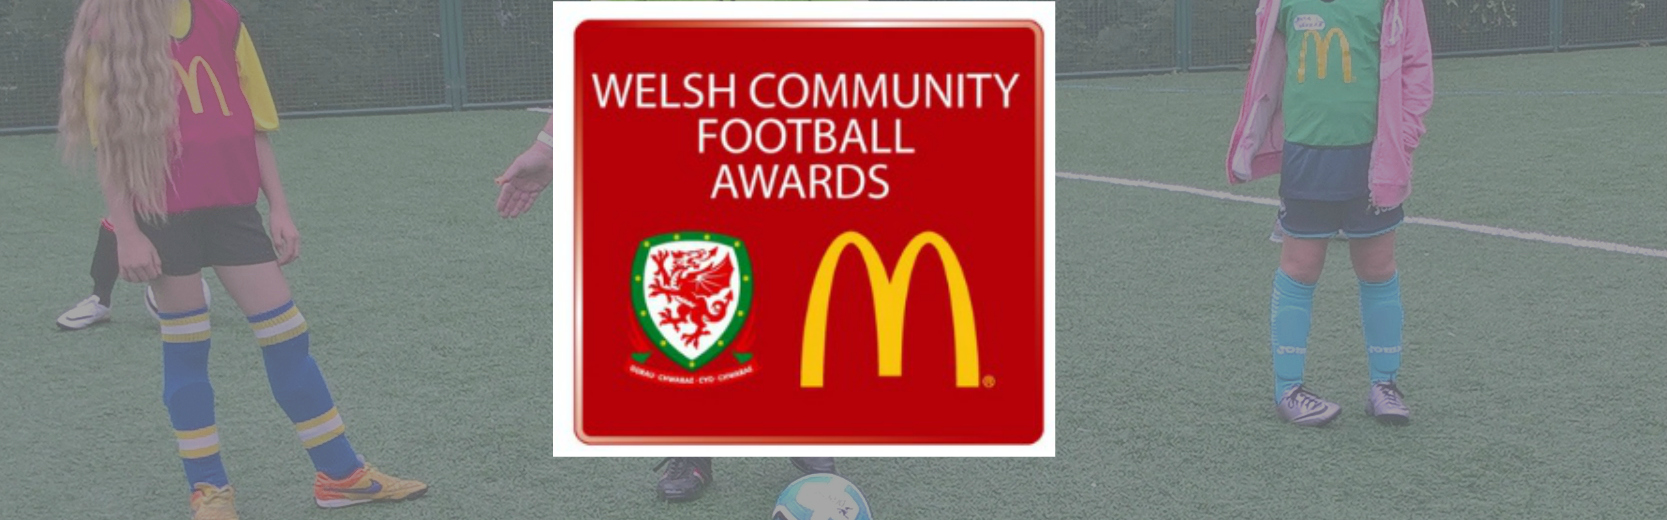 Why you should vote for Central Wales FA's Julie Christopher for McDonald's People's Award 2016